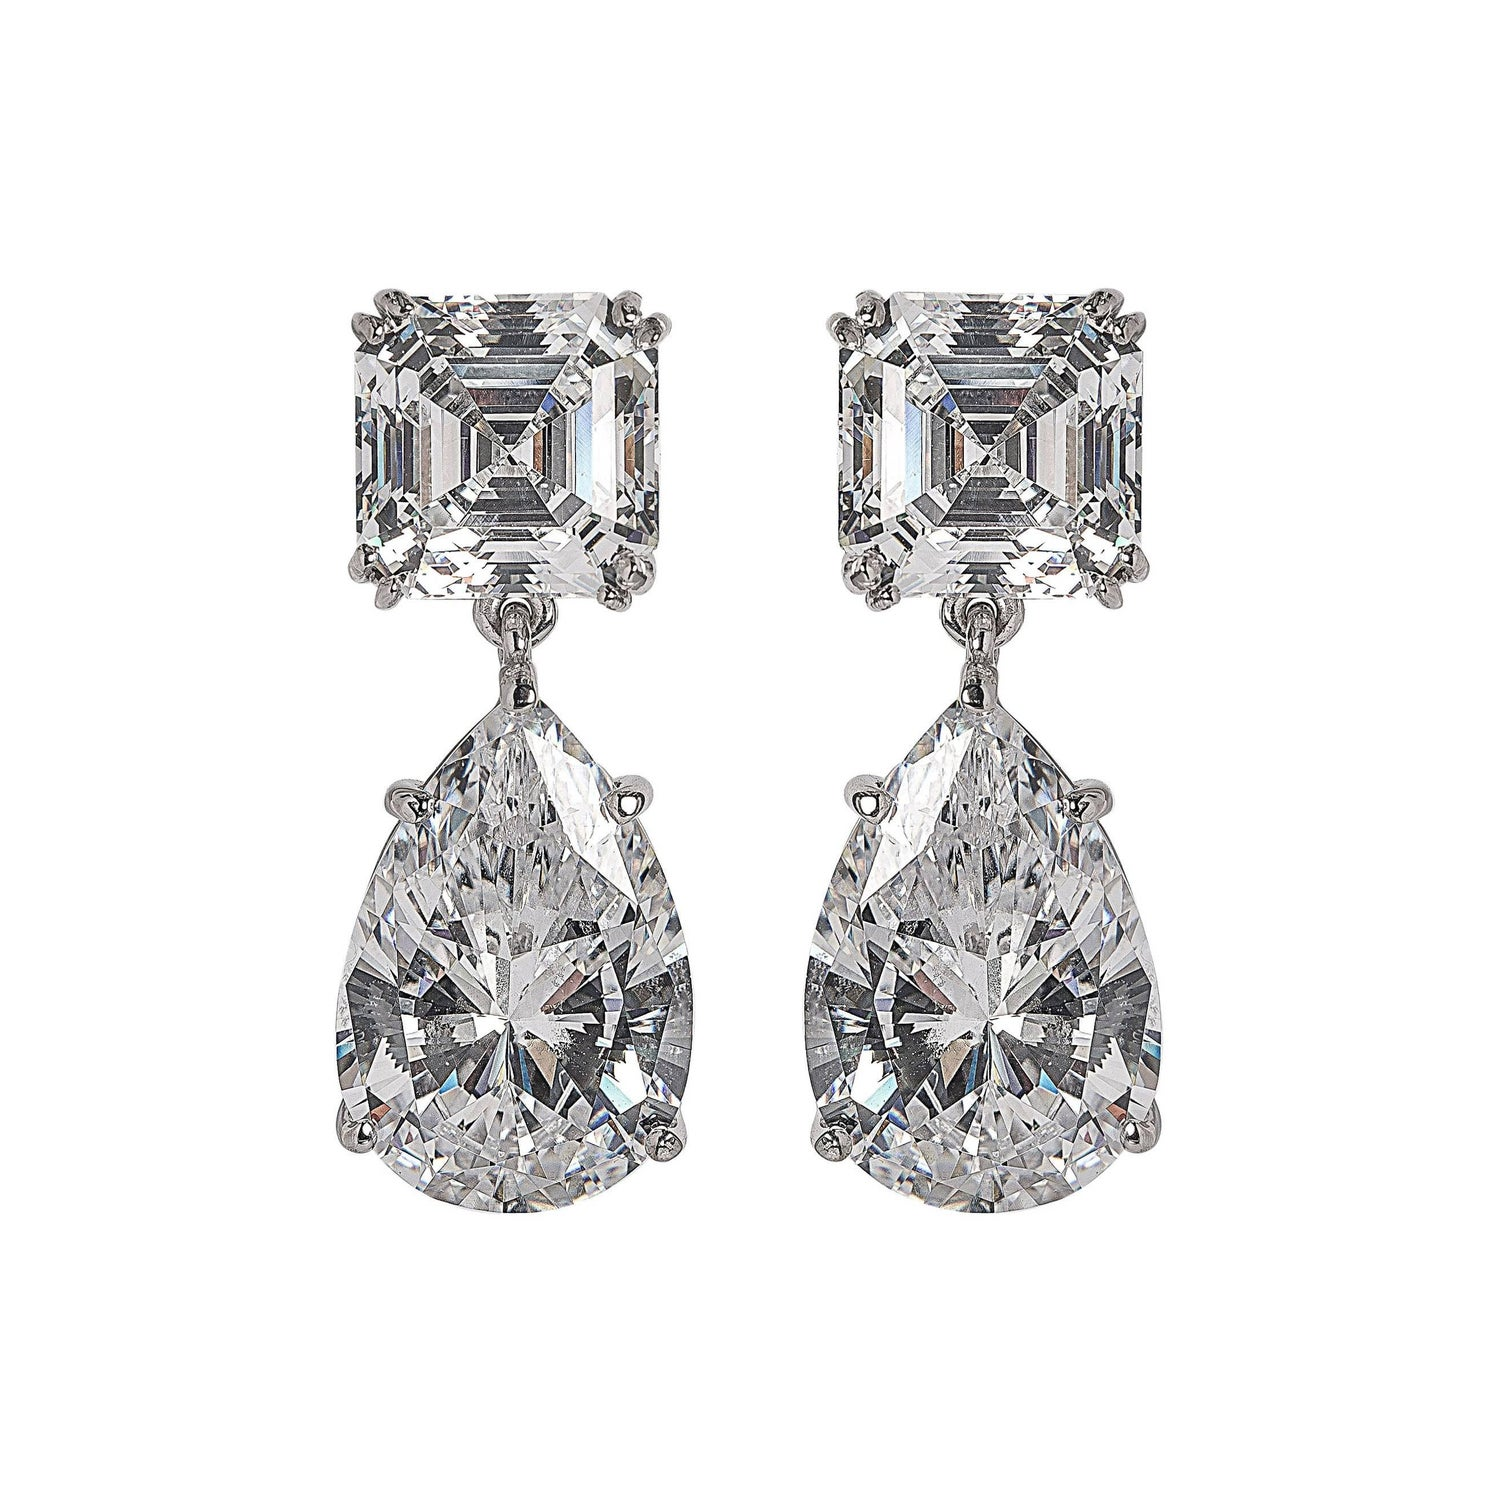 Magnificent costume jewelry chandelier earrings 1stdibs magnificent costume jewelry diamond drop earrings arubaitofo Gallery